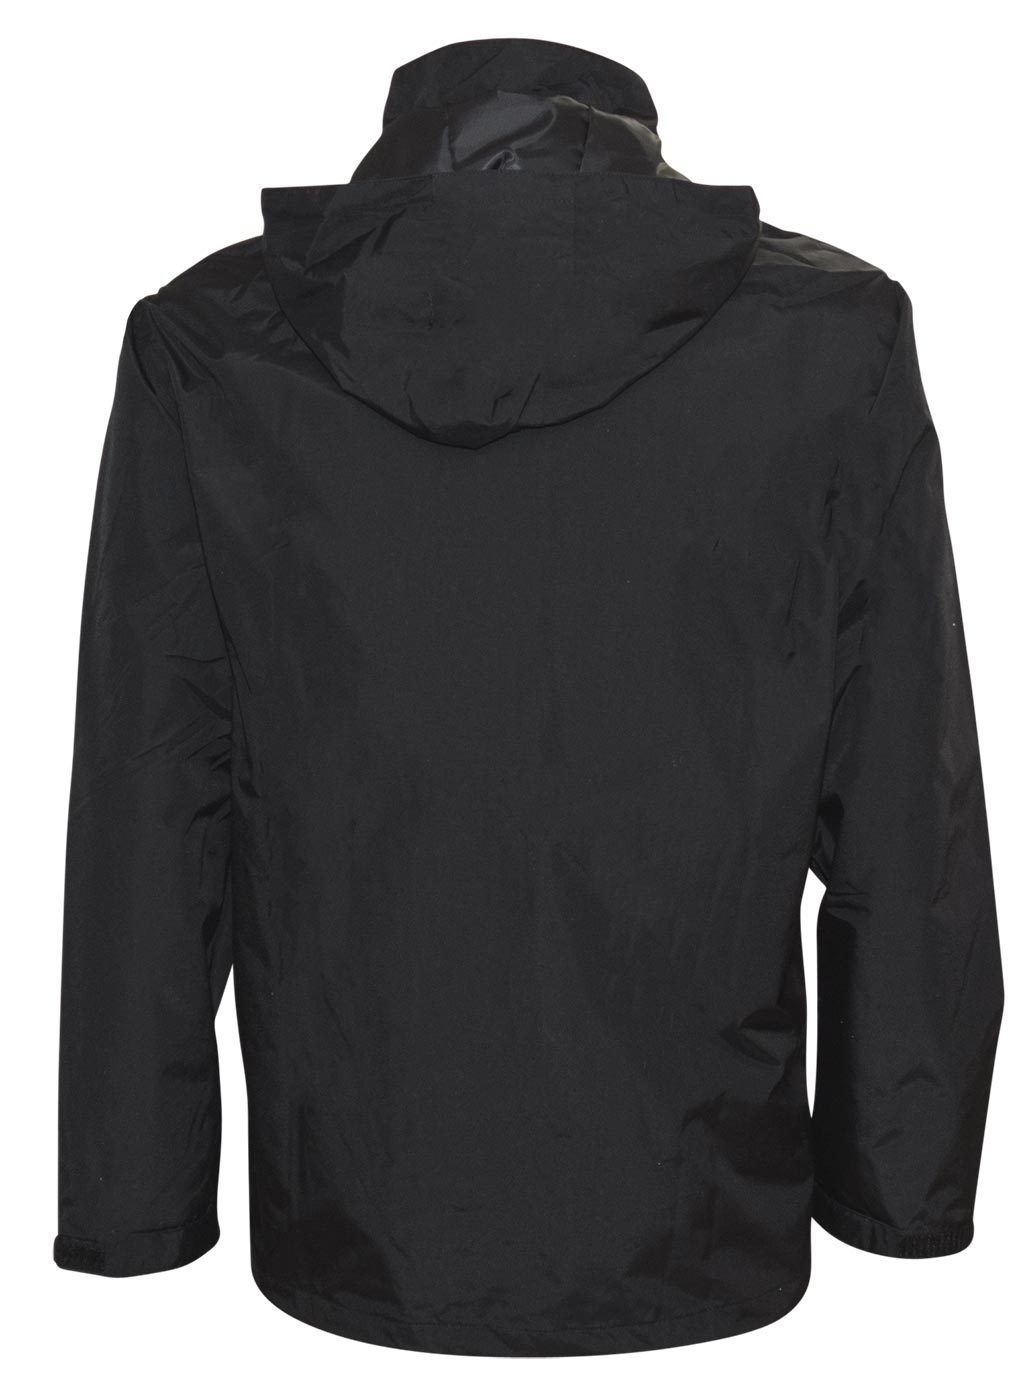 Women's Joey Light Travel Jacket